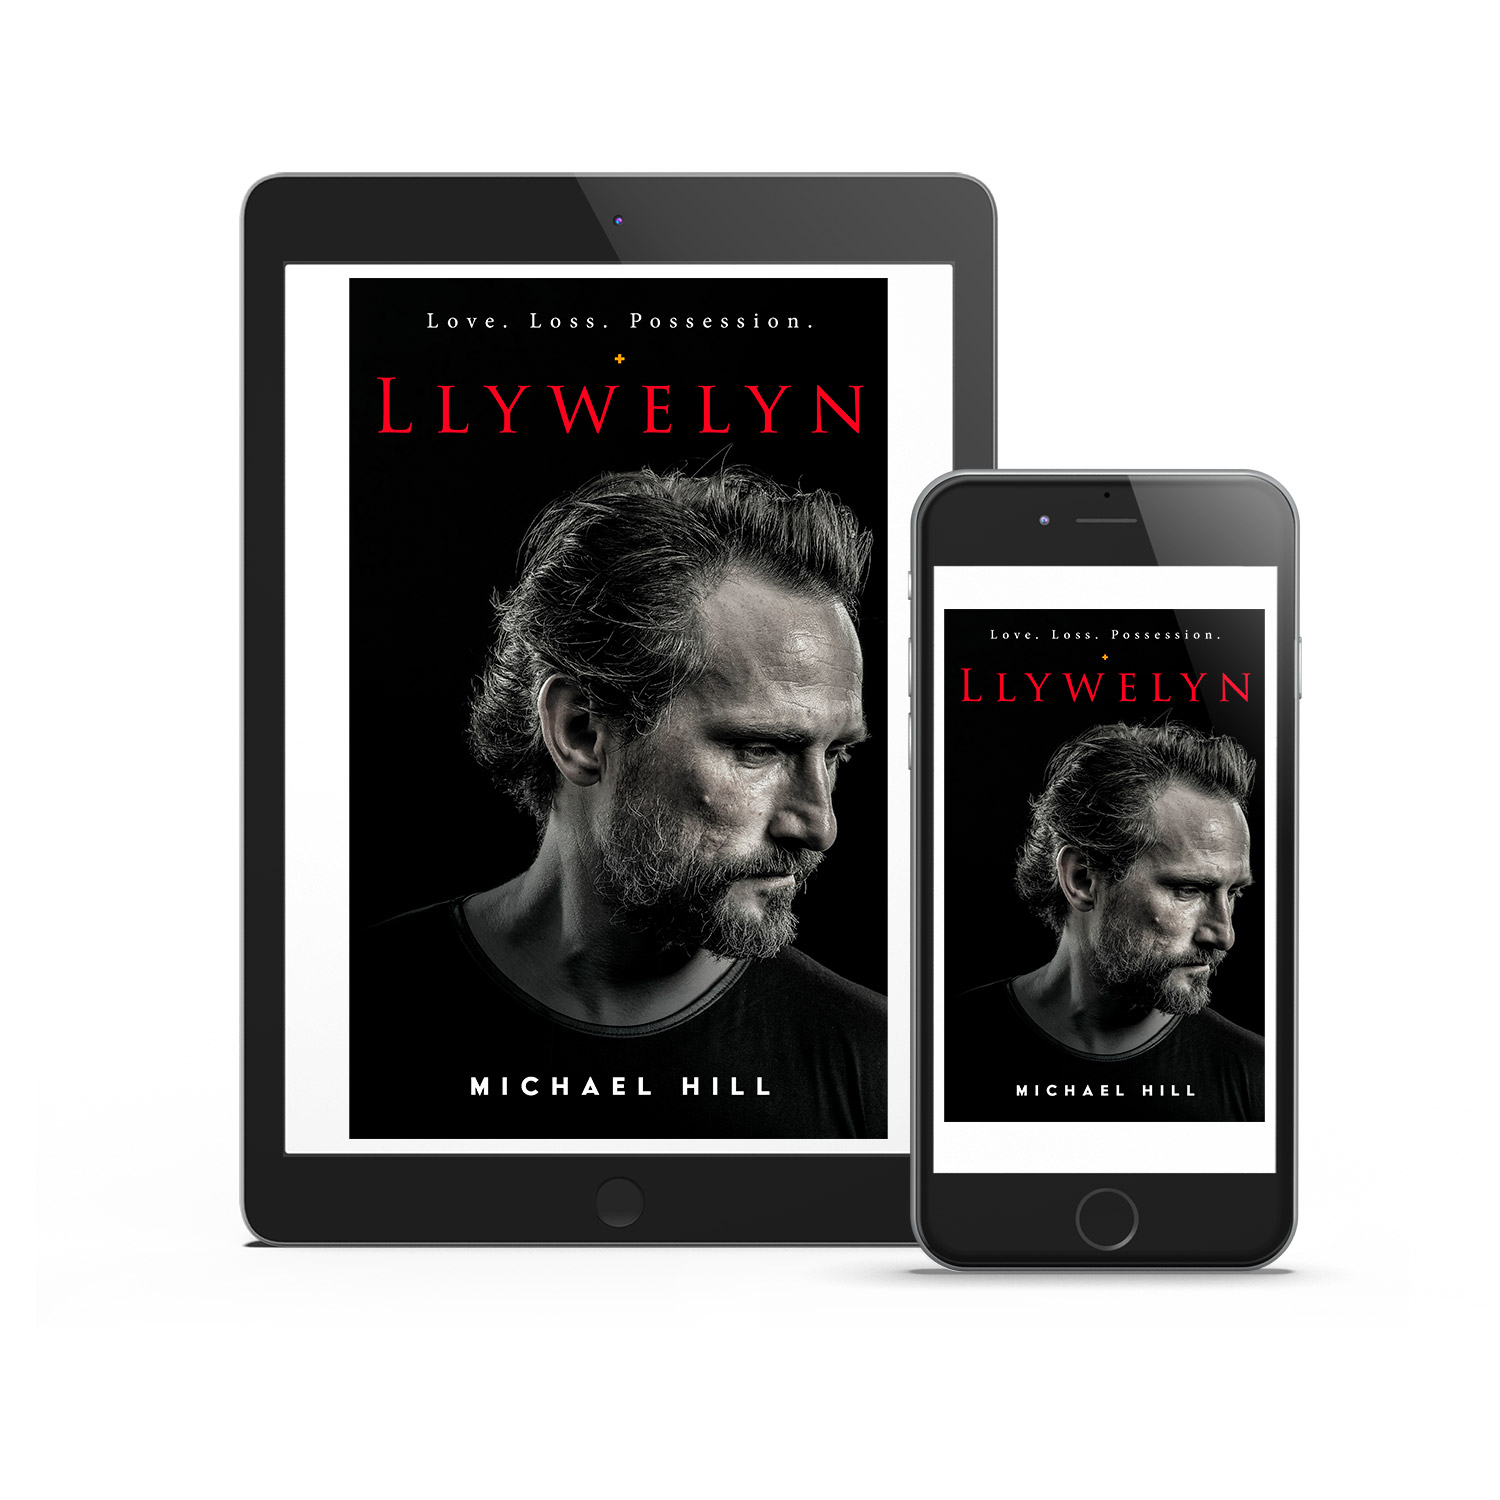 'Llywelyn' is a dark, Welsh interpersonal dramatic novel. The author is Michael Hill. The book cover design is by Mark Thomas. To learn more about what Mark could do for your book, please visit coverness.com.